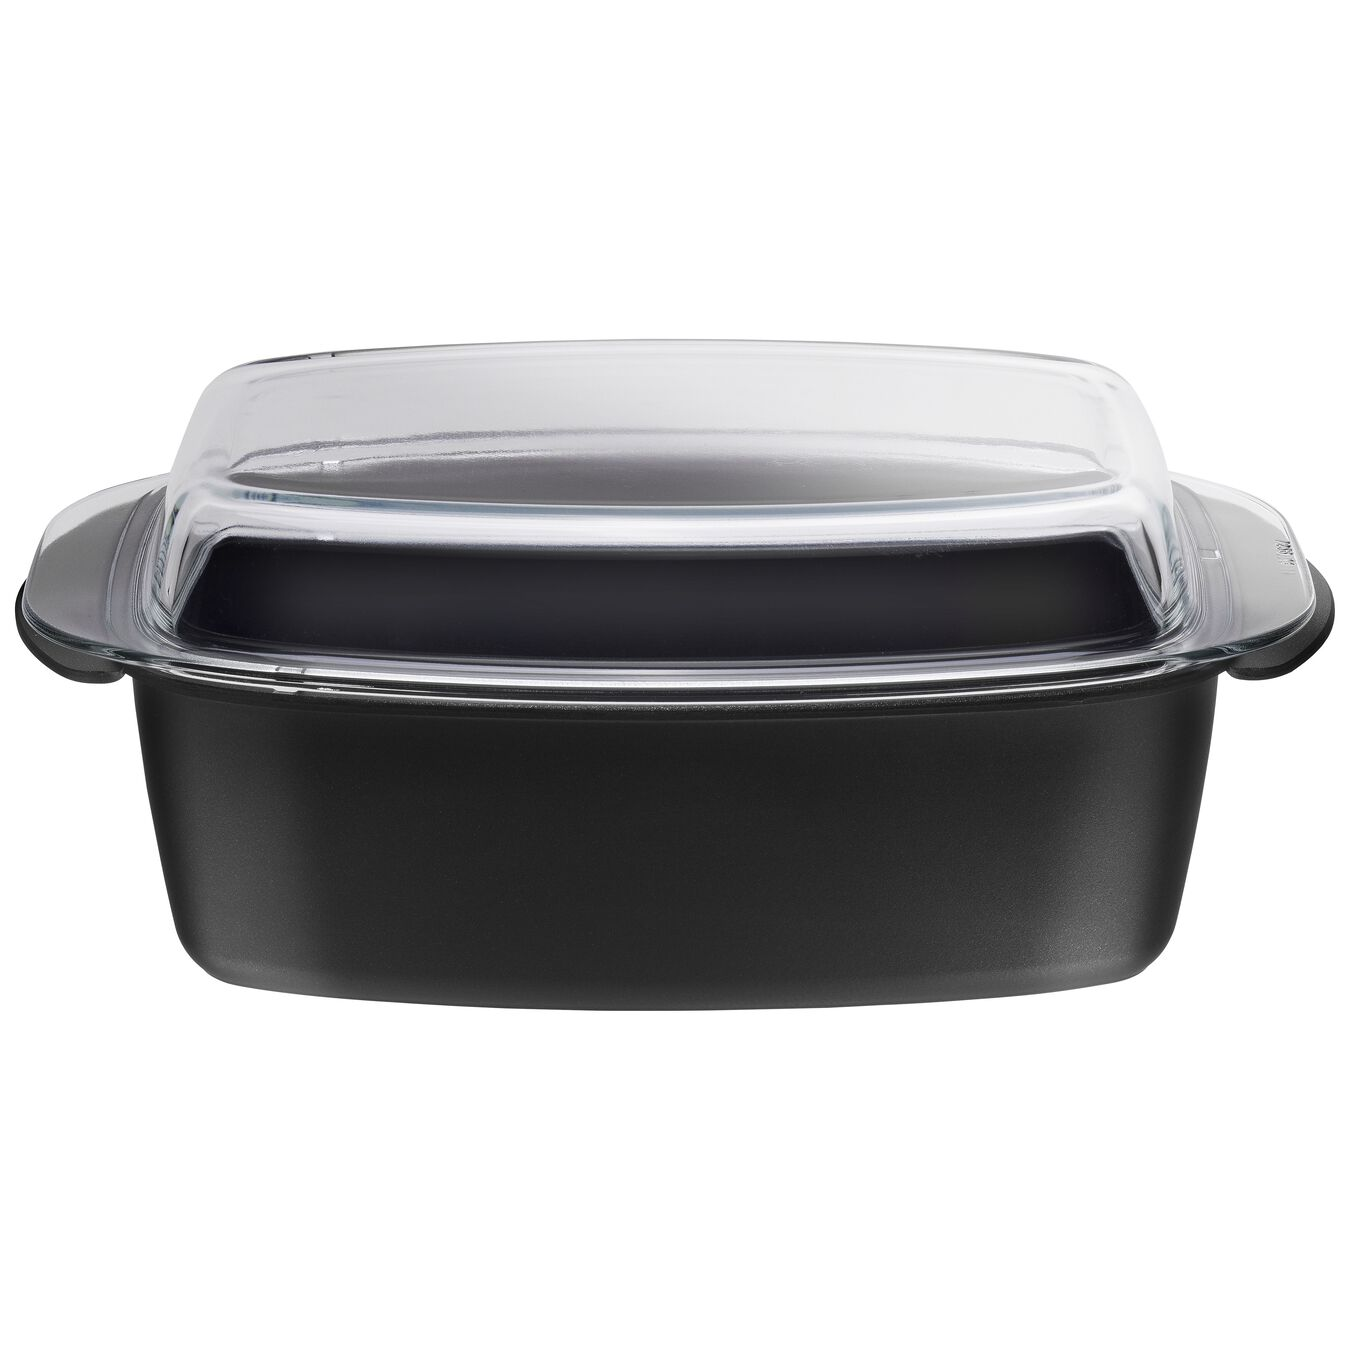 32 cm round Roaster with glass lid, black,,large 1